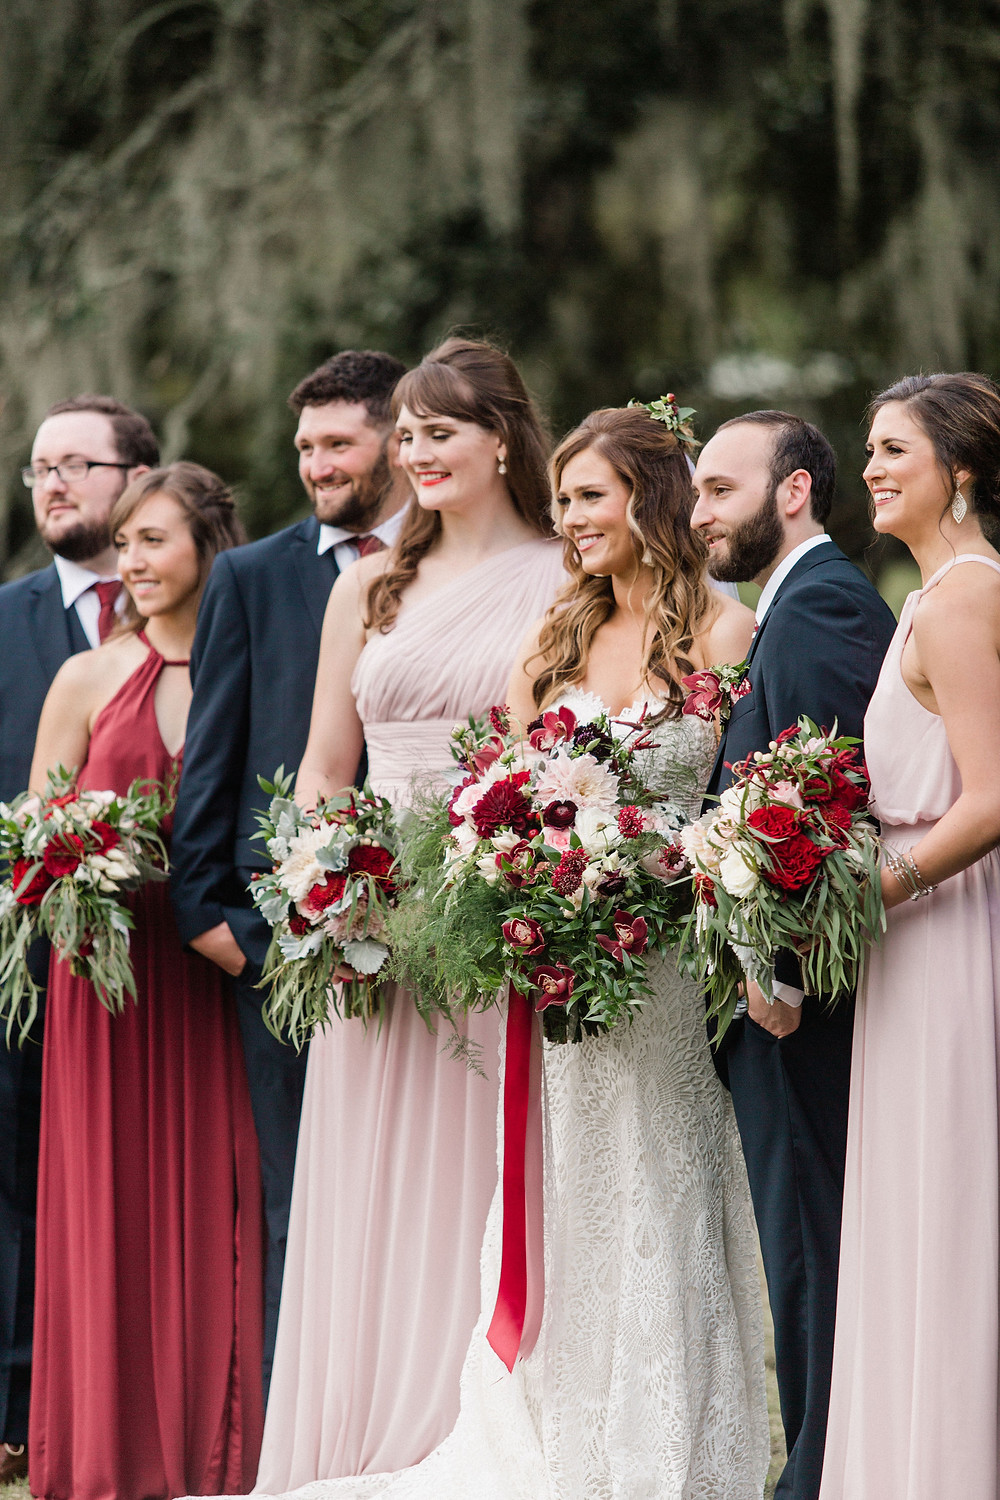 Chicory Wedding in New Orleans with Tasha Rae Photography, Mise En Place Events, Lovegood Wedding & Event Rentals | Cranberry Wedding, Vintage Rentals, Lounge Space, Wooden Backdrop Arbor, Wooden Crates, Bridal Party